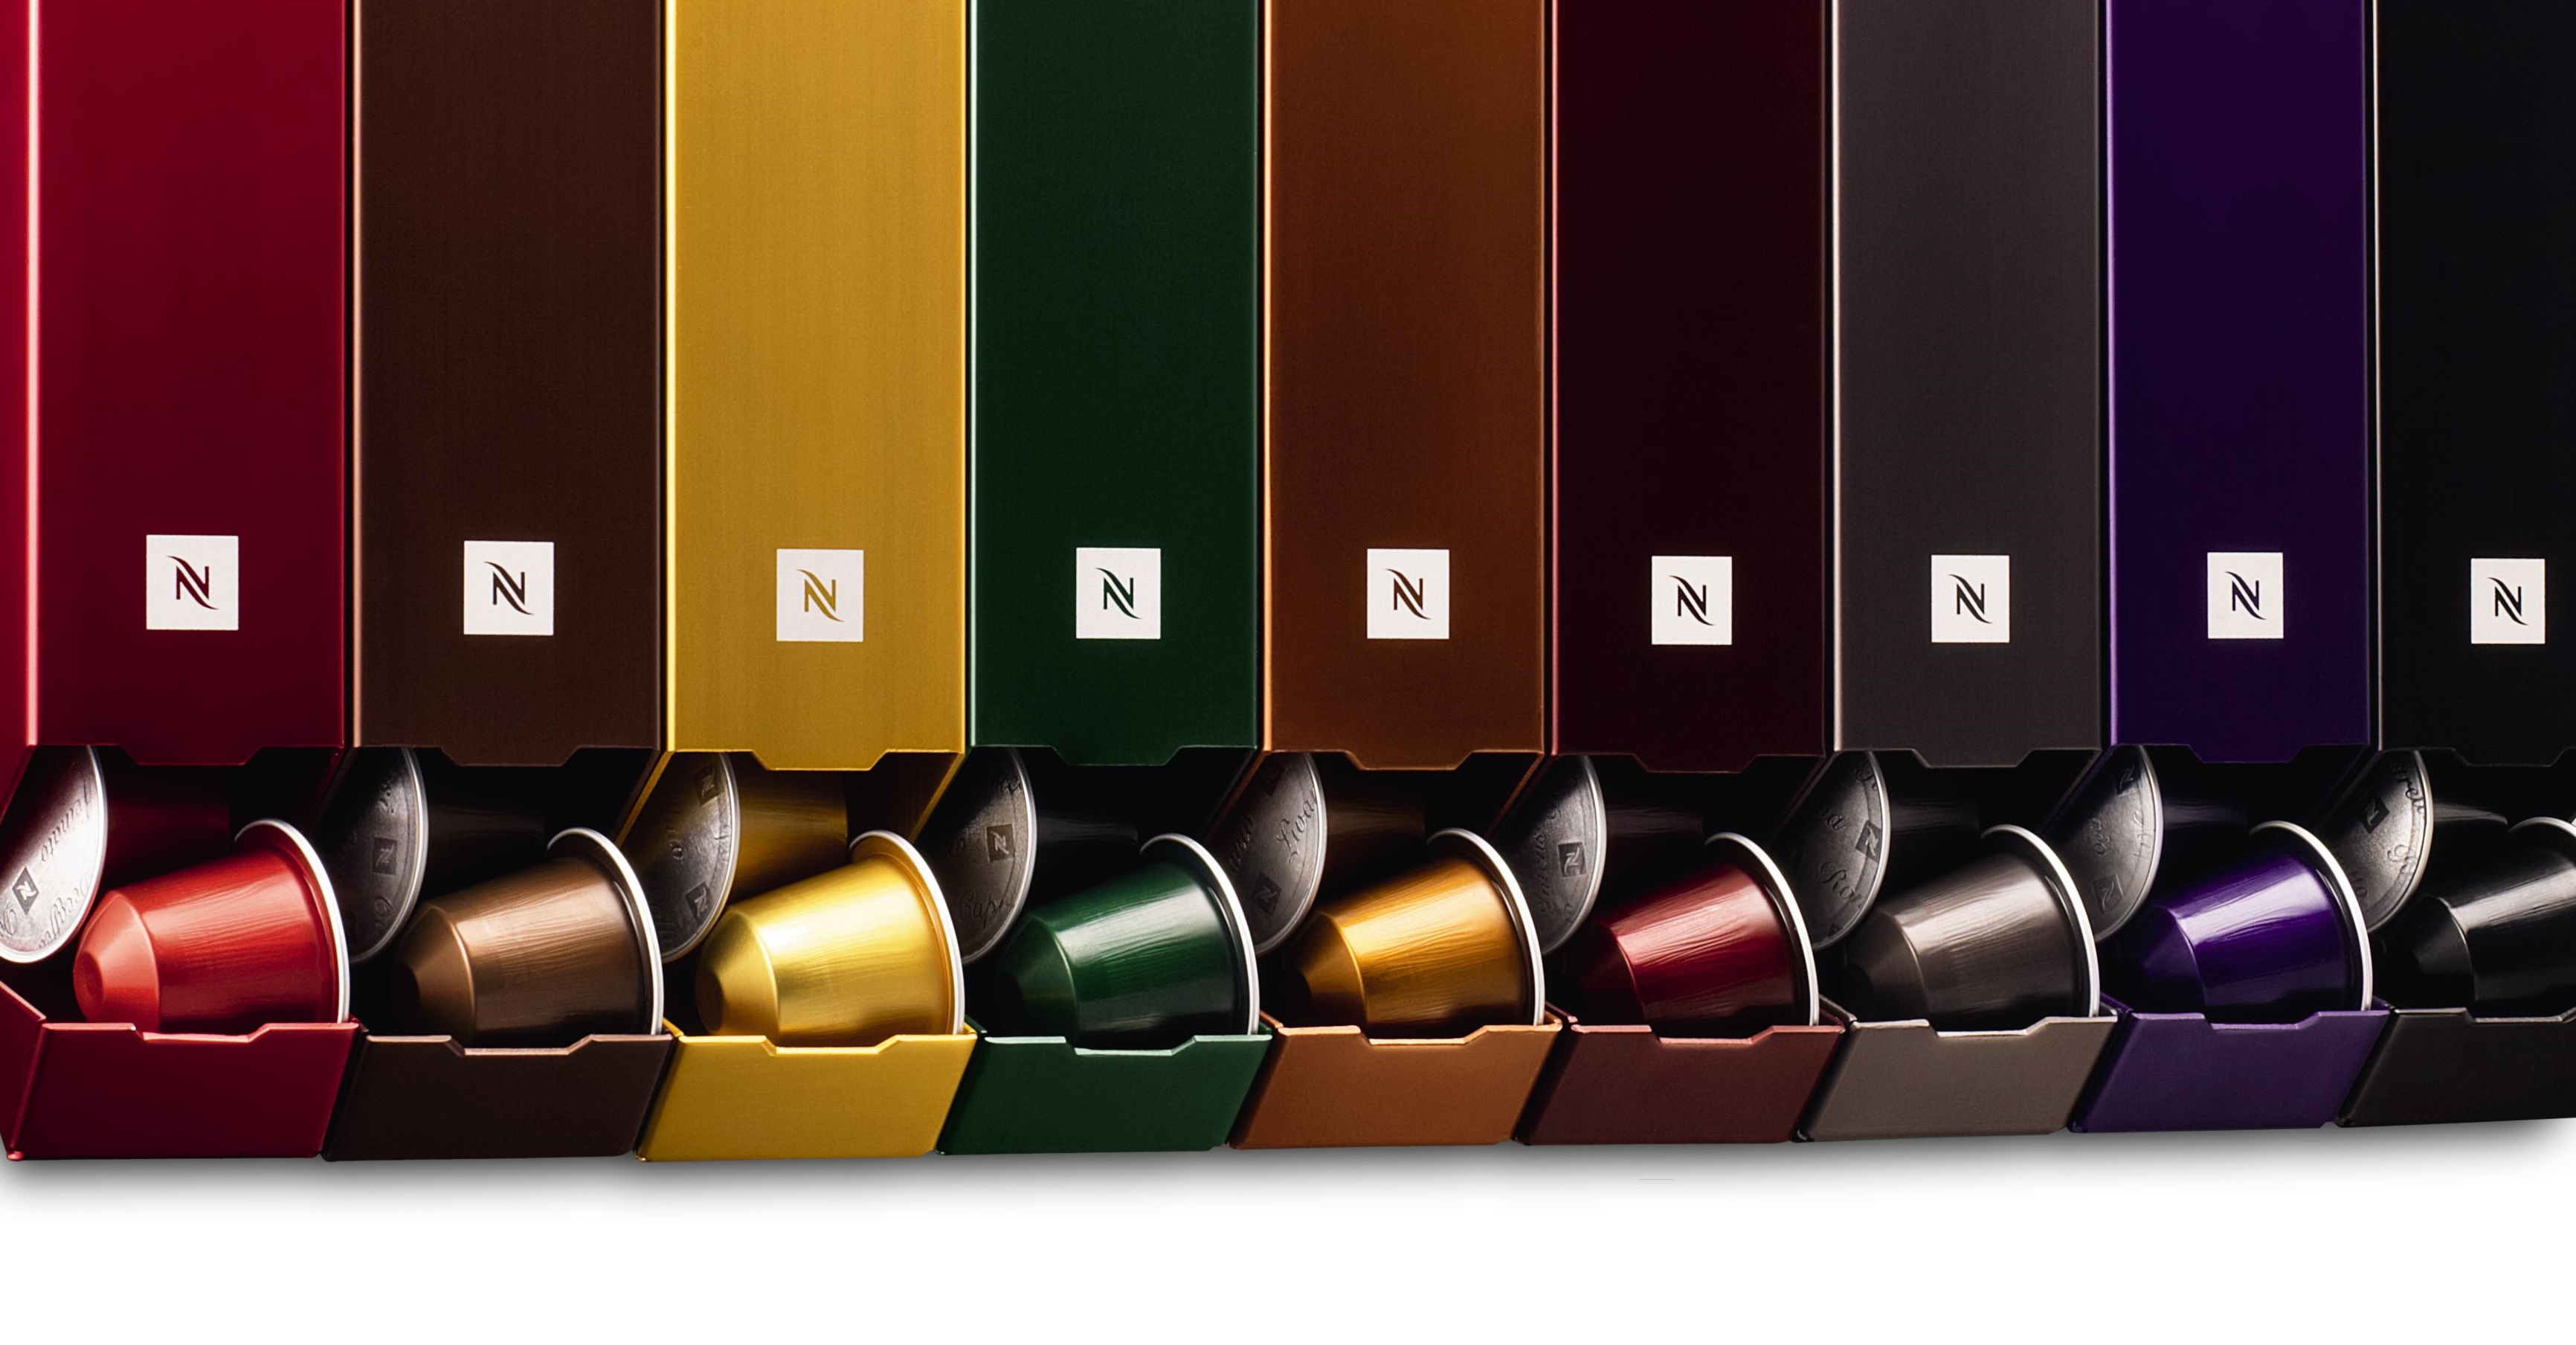 Google Trends Suggests Accelerated Growth Of Nespresso